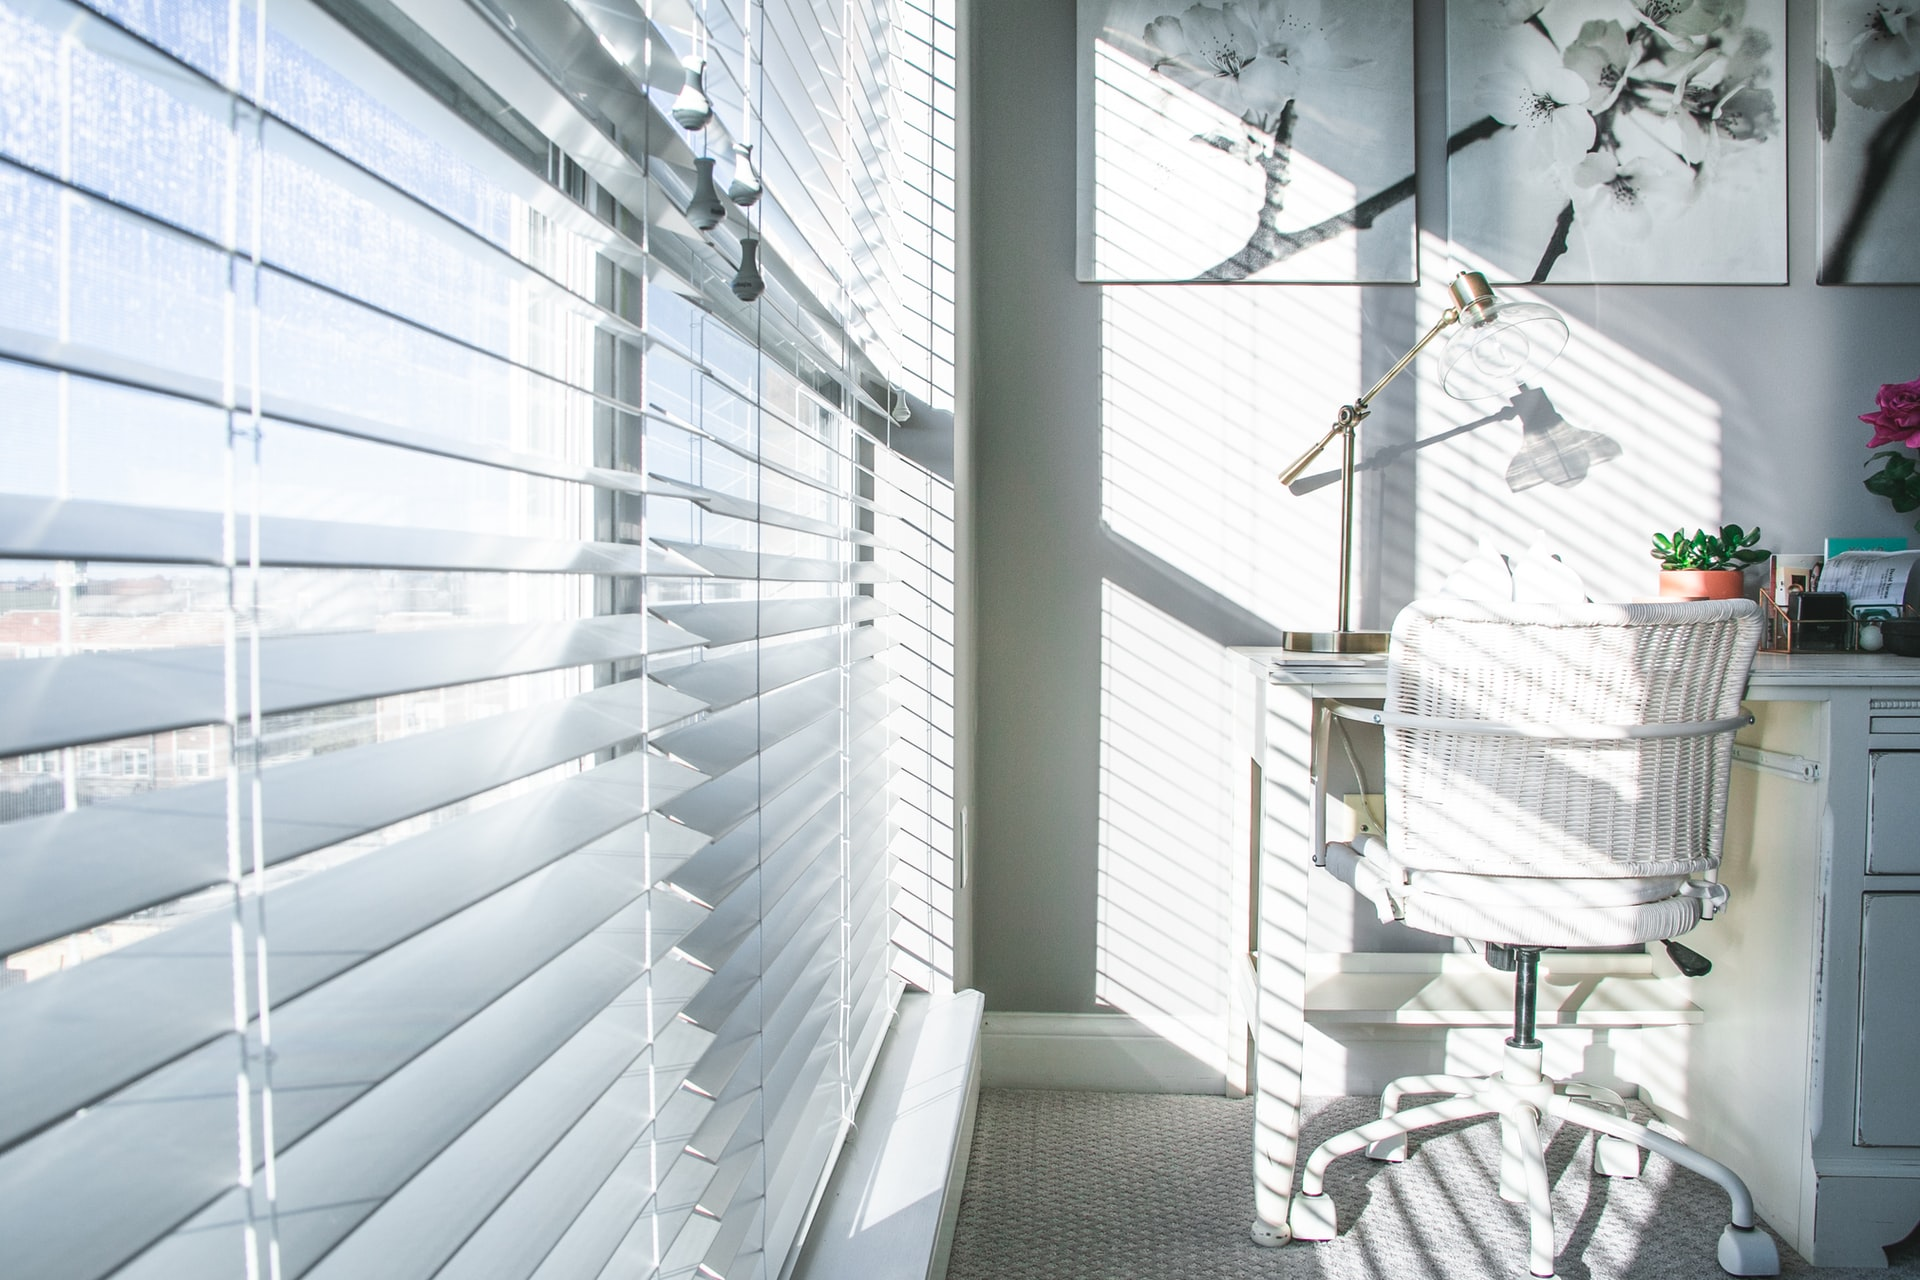 Window blinds in a Fort Myers, FL home